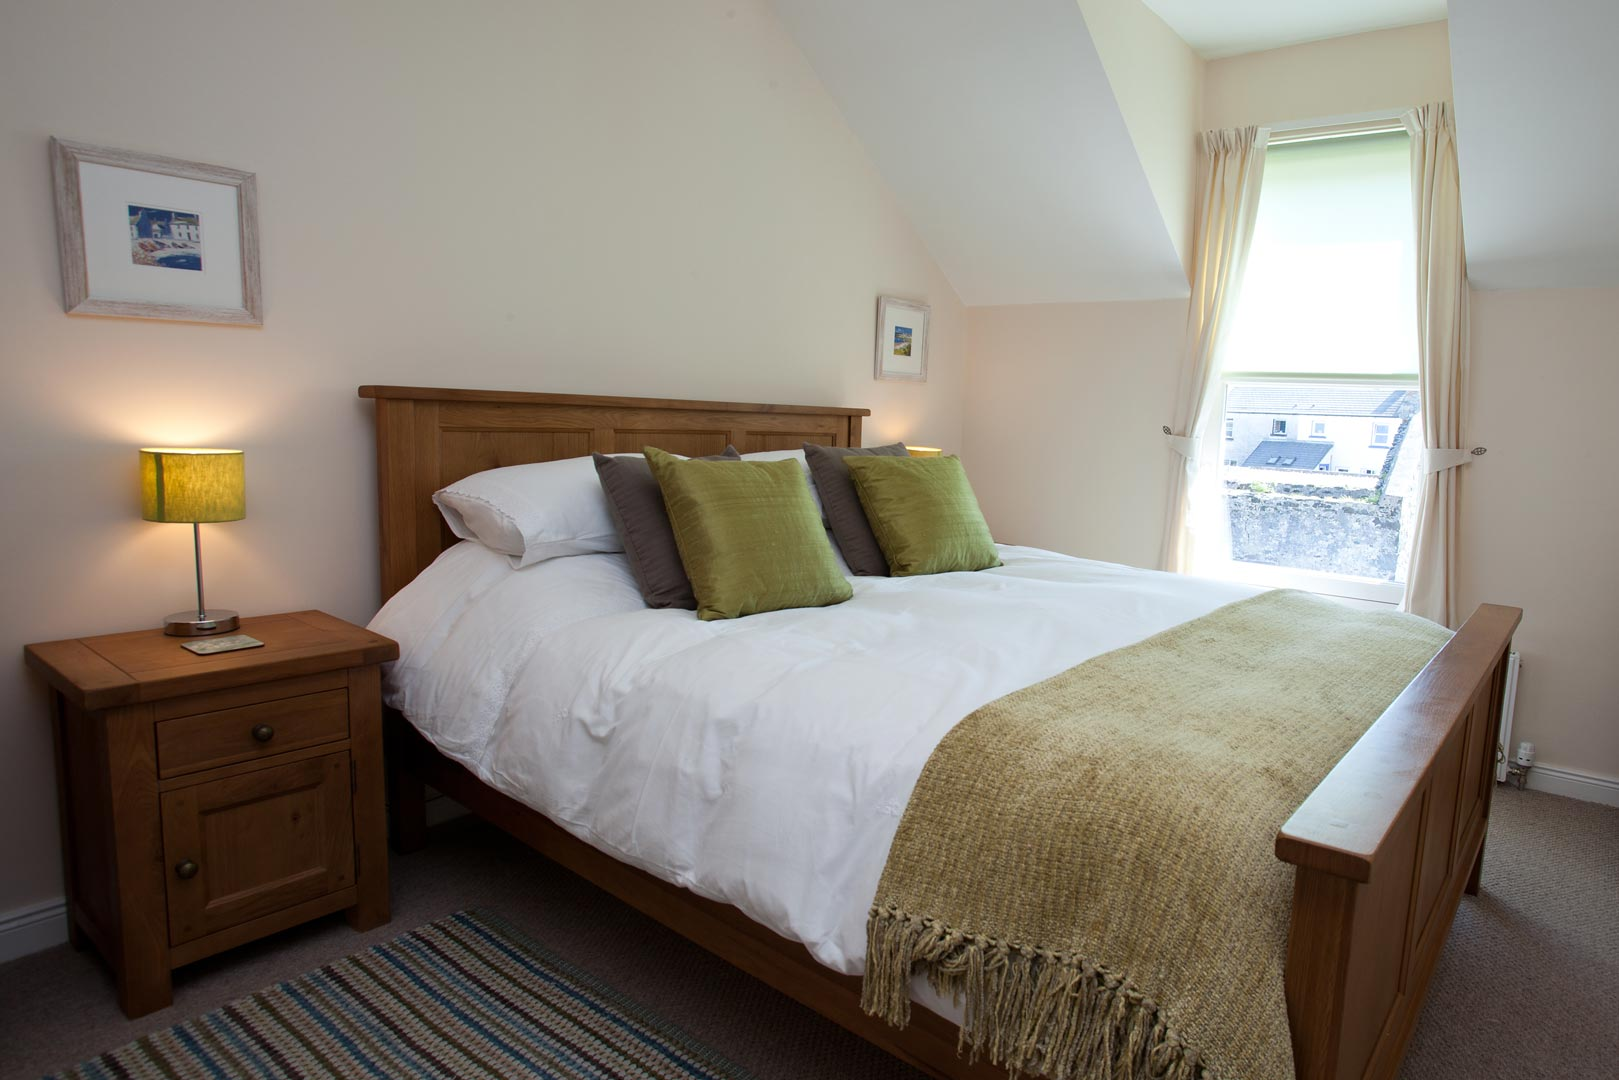 Sanaigmore cottage: one of the double rooms